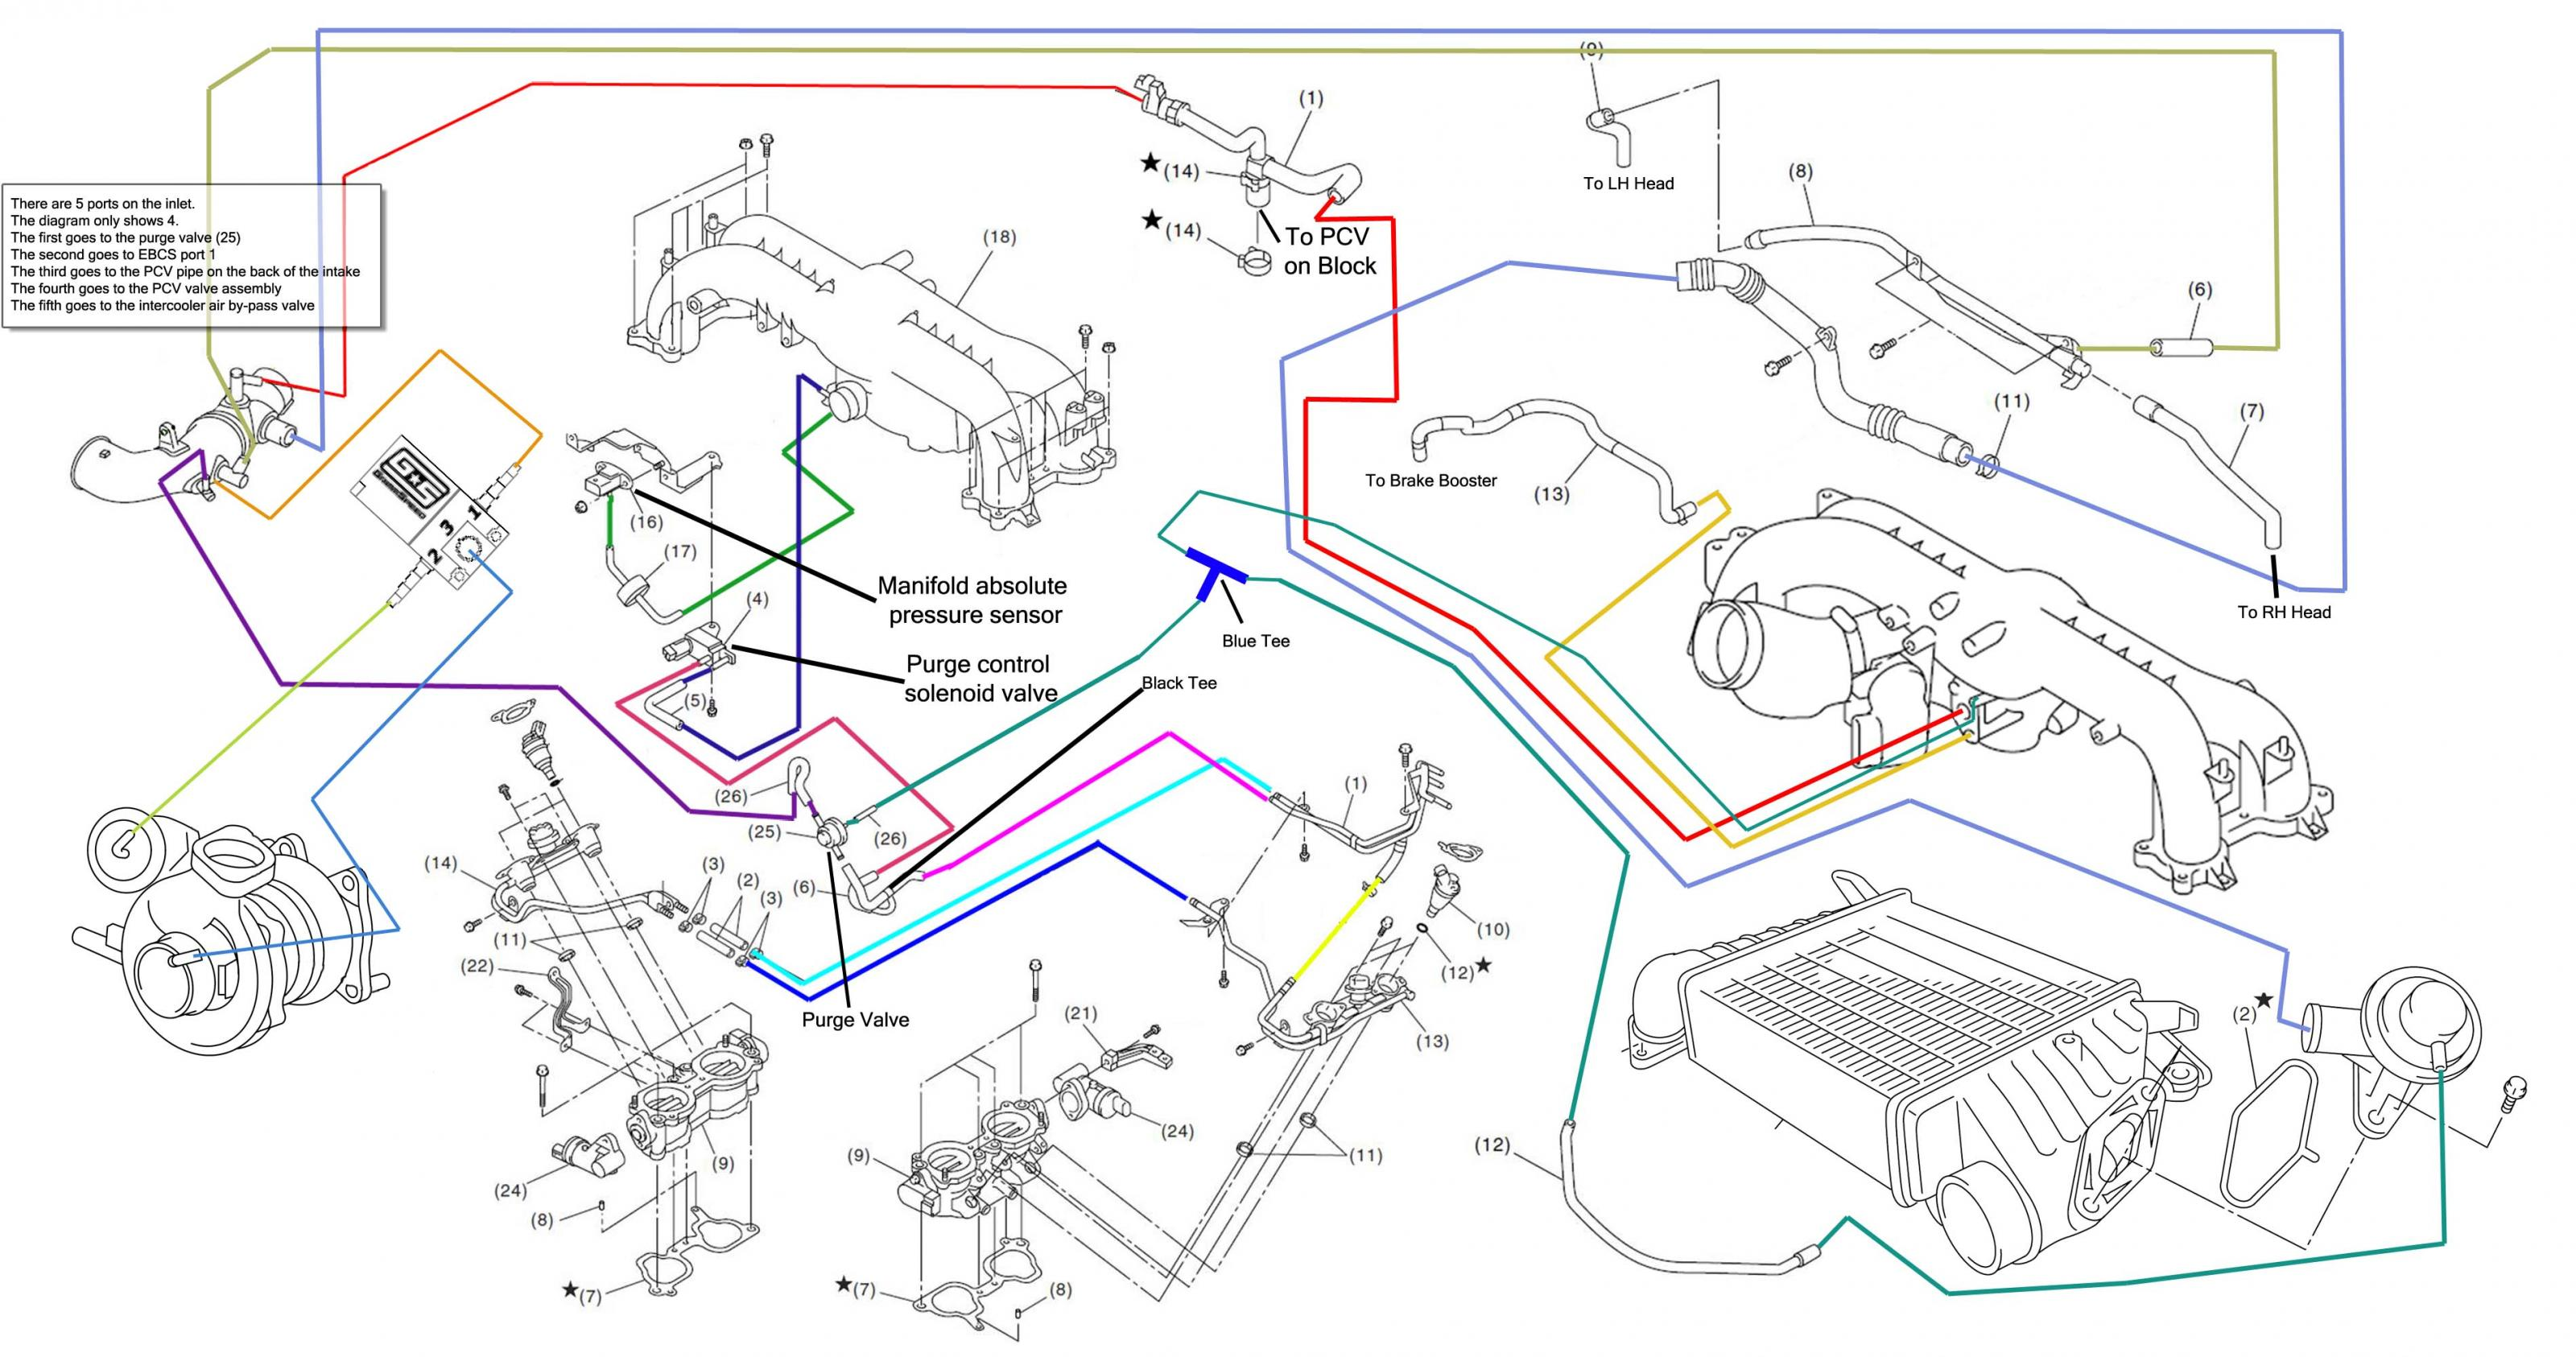 Attachments Subaru Outback Forums Daewoo Fuse Box Diagram Fuel Intake Combined 1 1533135411690